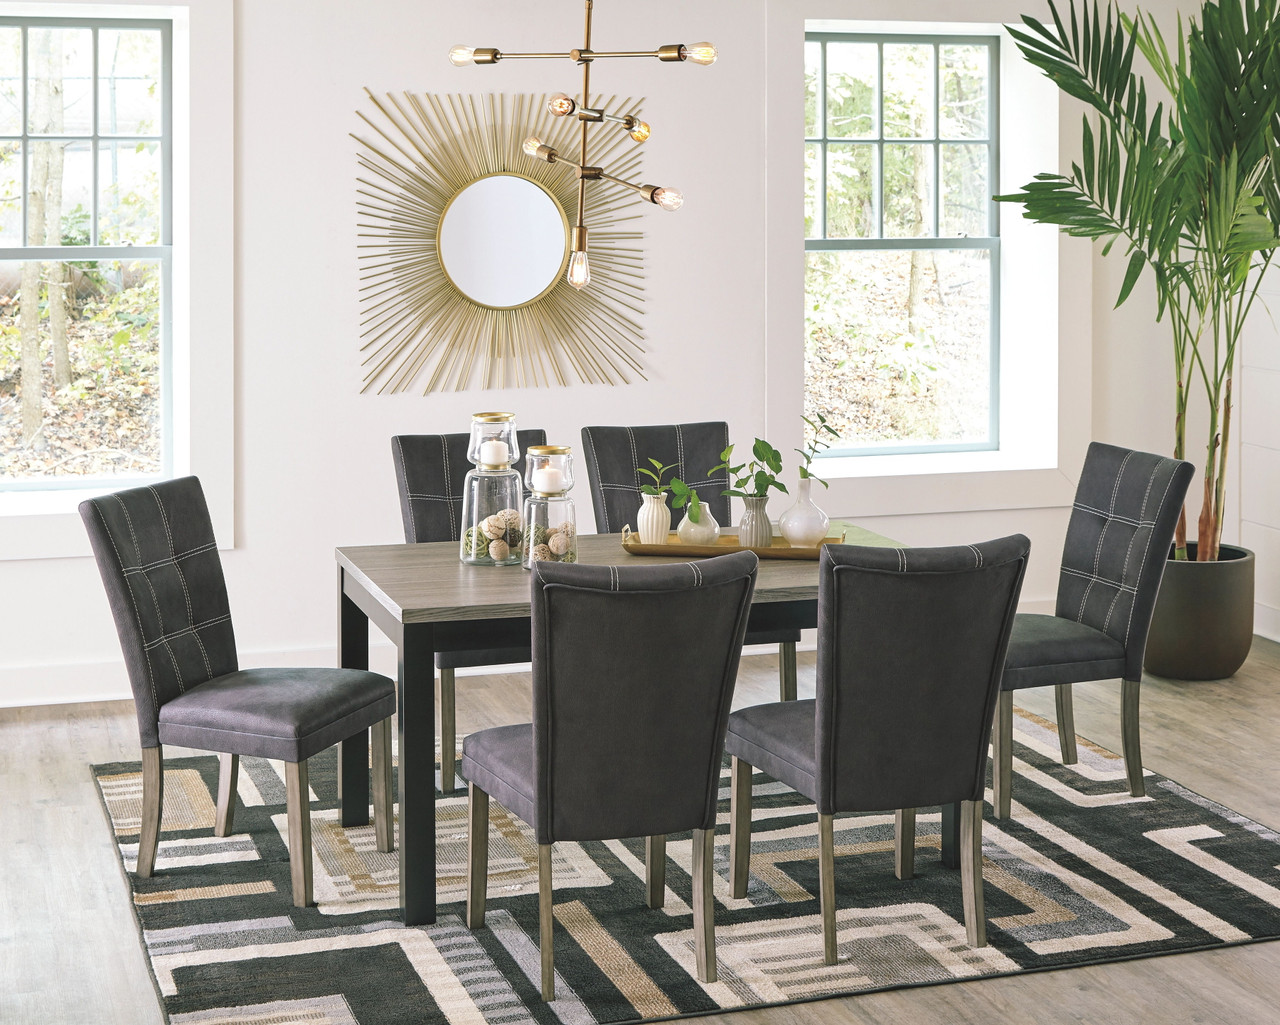 The Dontally Two Tone 7 Pc Rectangular Table 6 Upholstered Side Chairs Available At Ritz Furniture Planet Serving Mississauga On